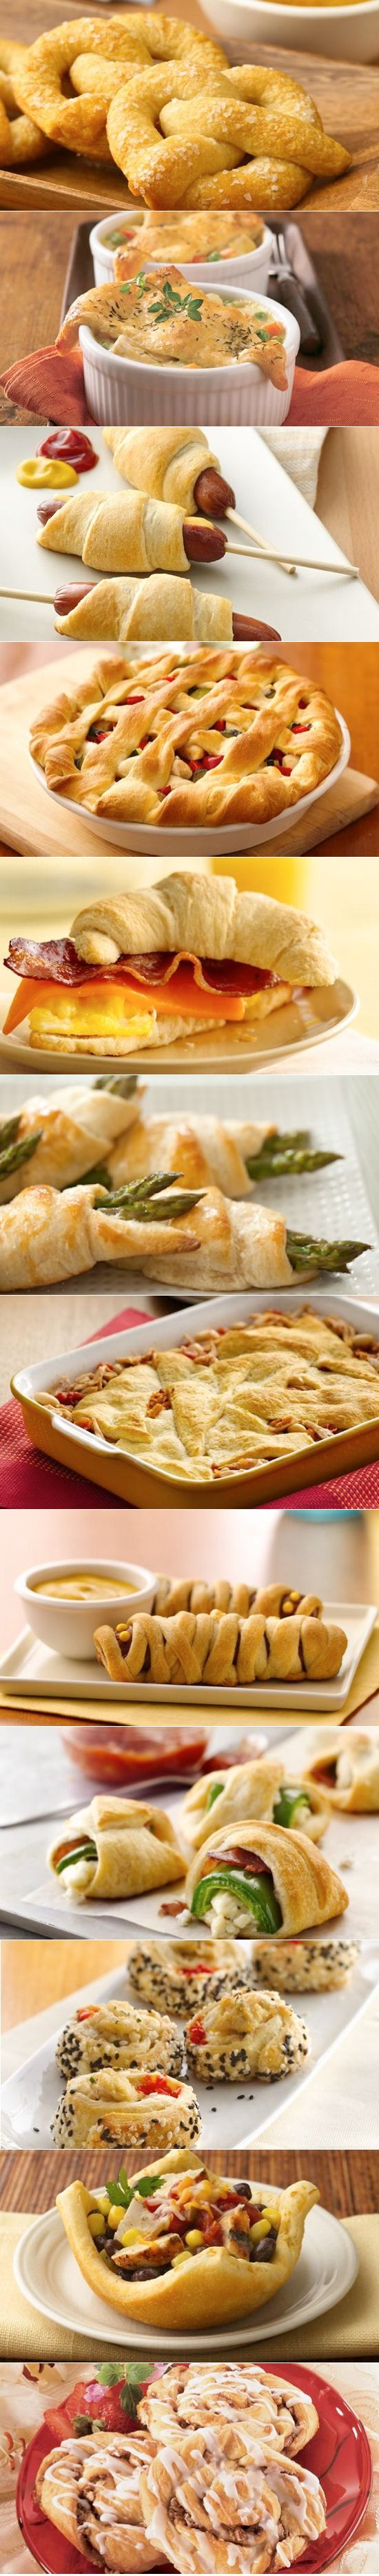 Crescent roll recipes!